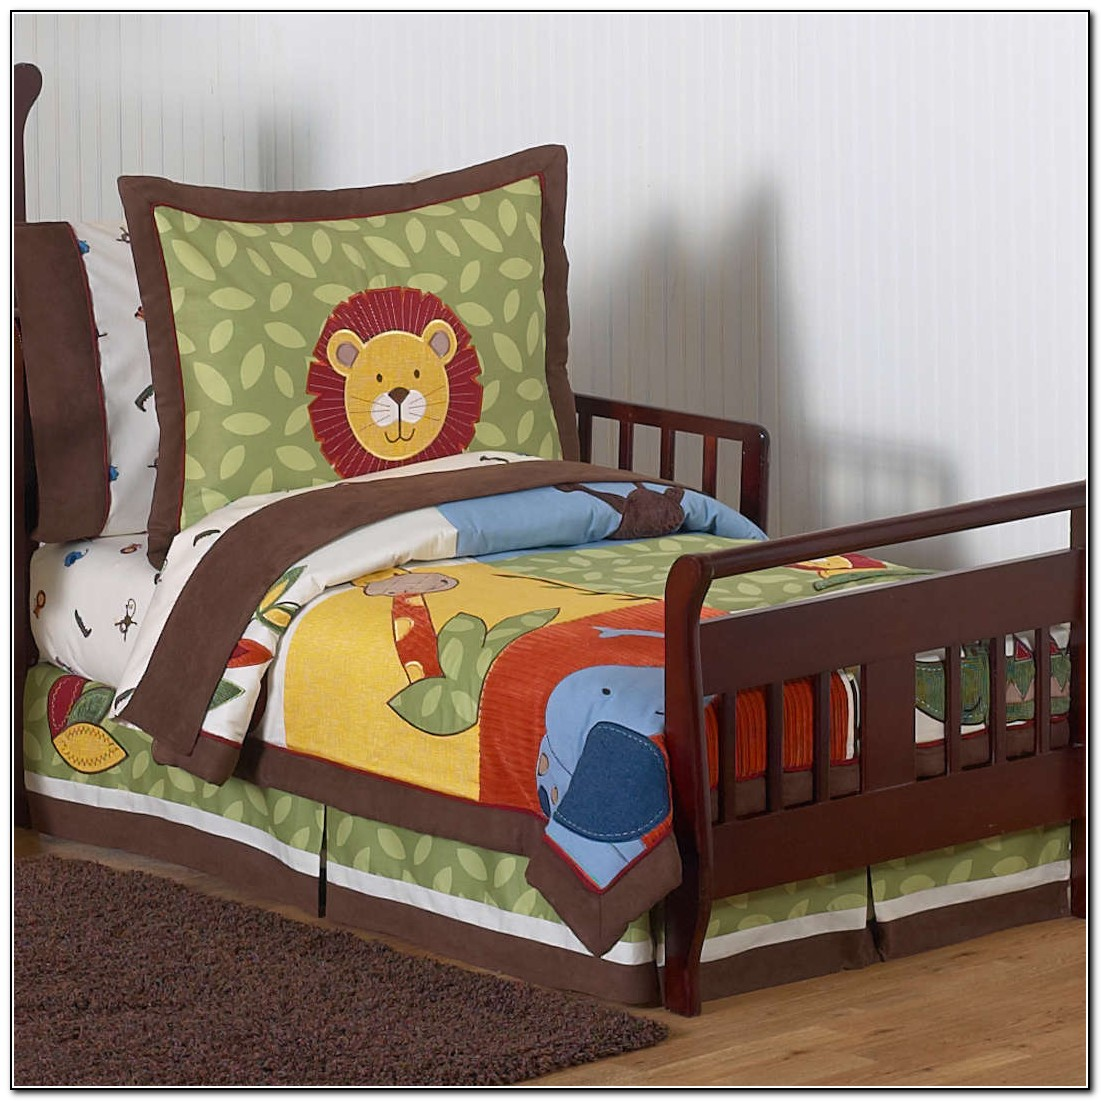 Toddler bedding sets for boys download page home design ideas galleries home design ideas guide - Toddler beds for boys ...